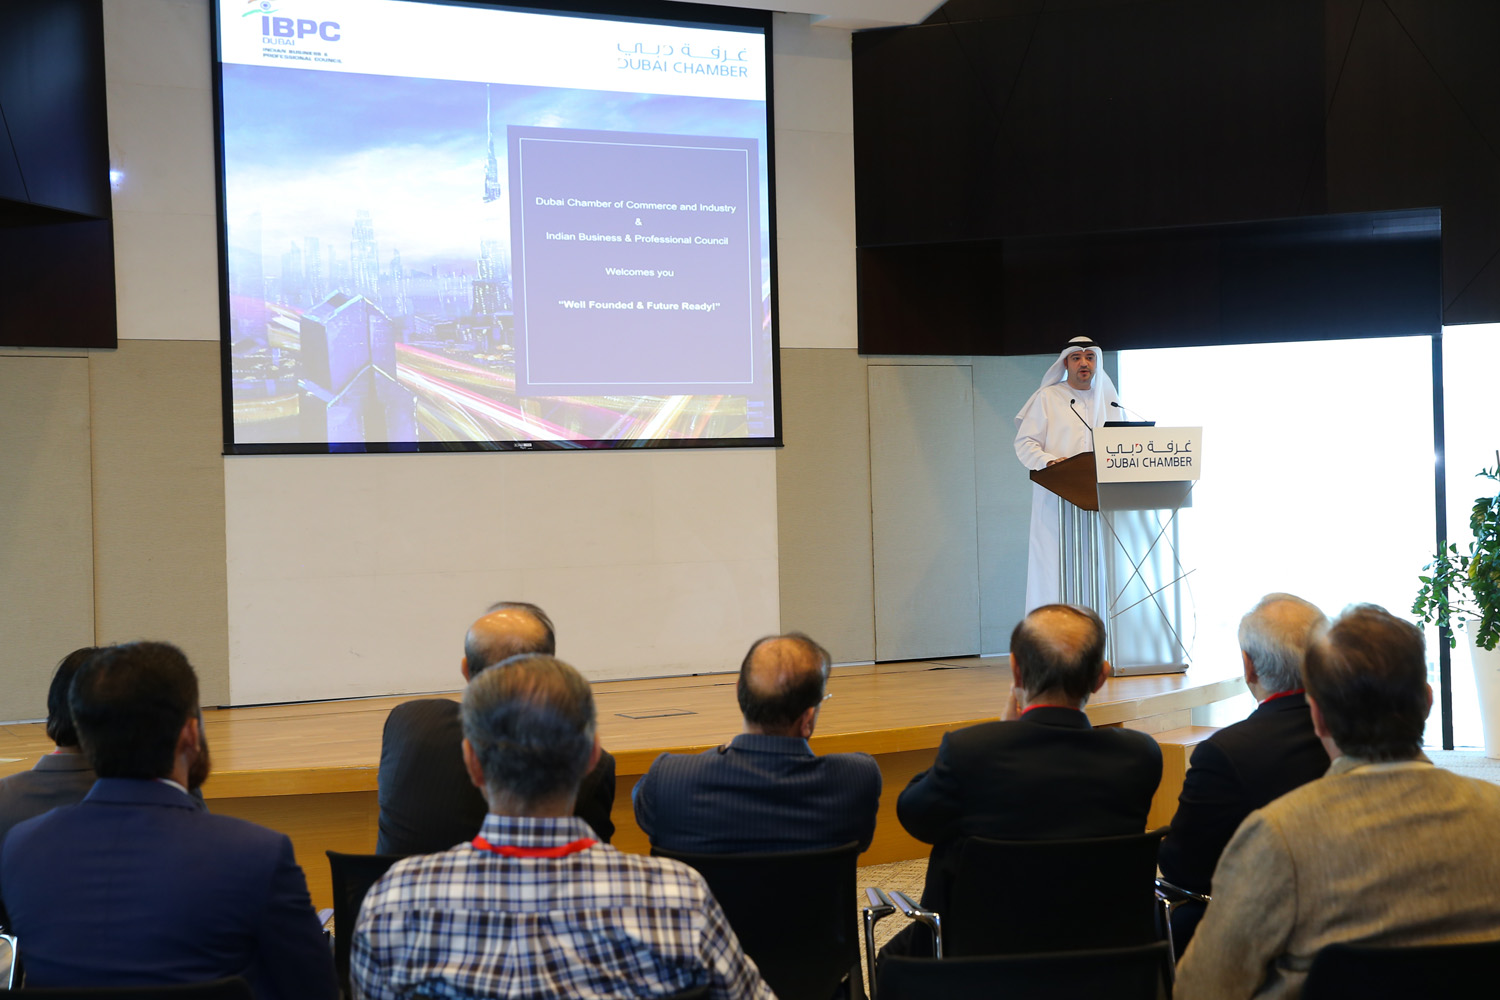 indian business and professional council in dubai highlights efforts to strengthen uae-india ties1